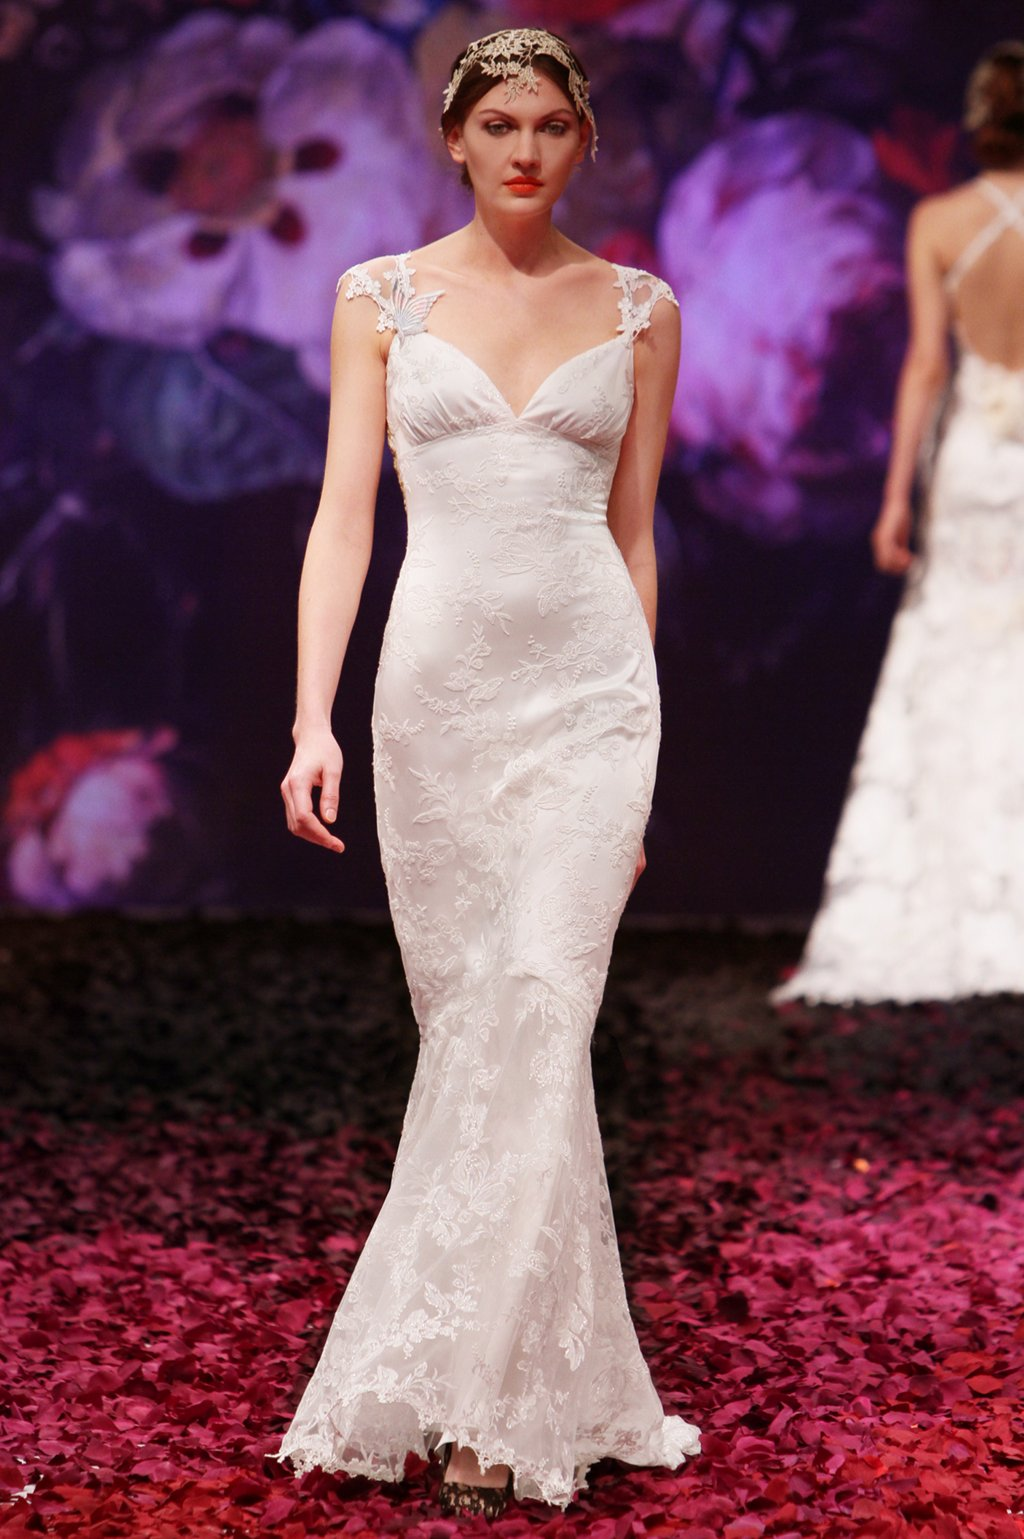 Papillion-wedding-dress-by-claire-pettibone-2014-still-life-bridal-collection.full